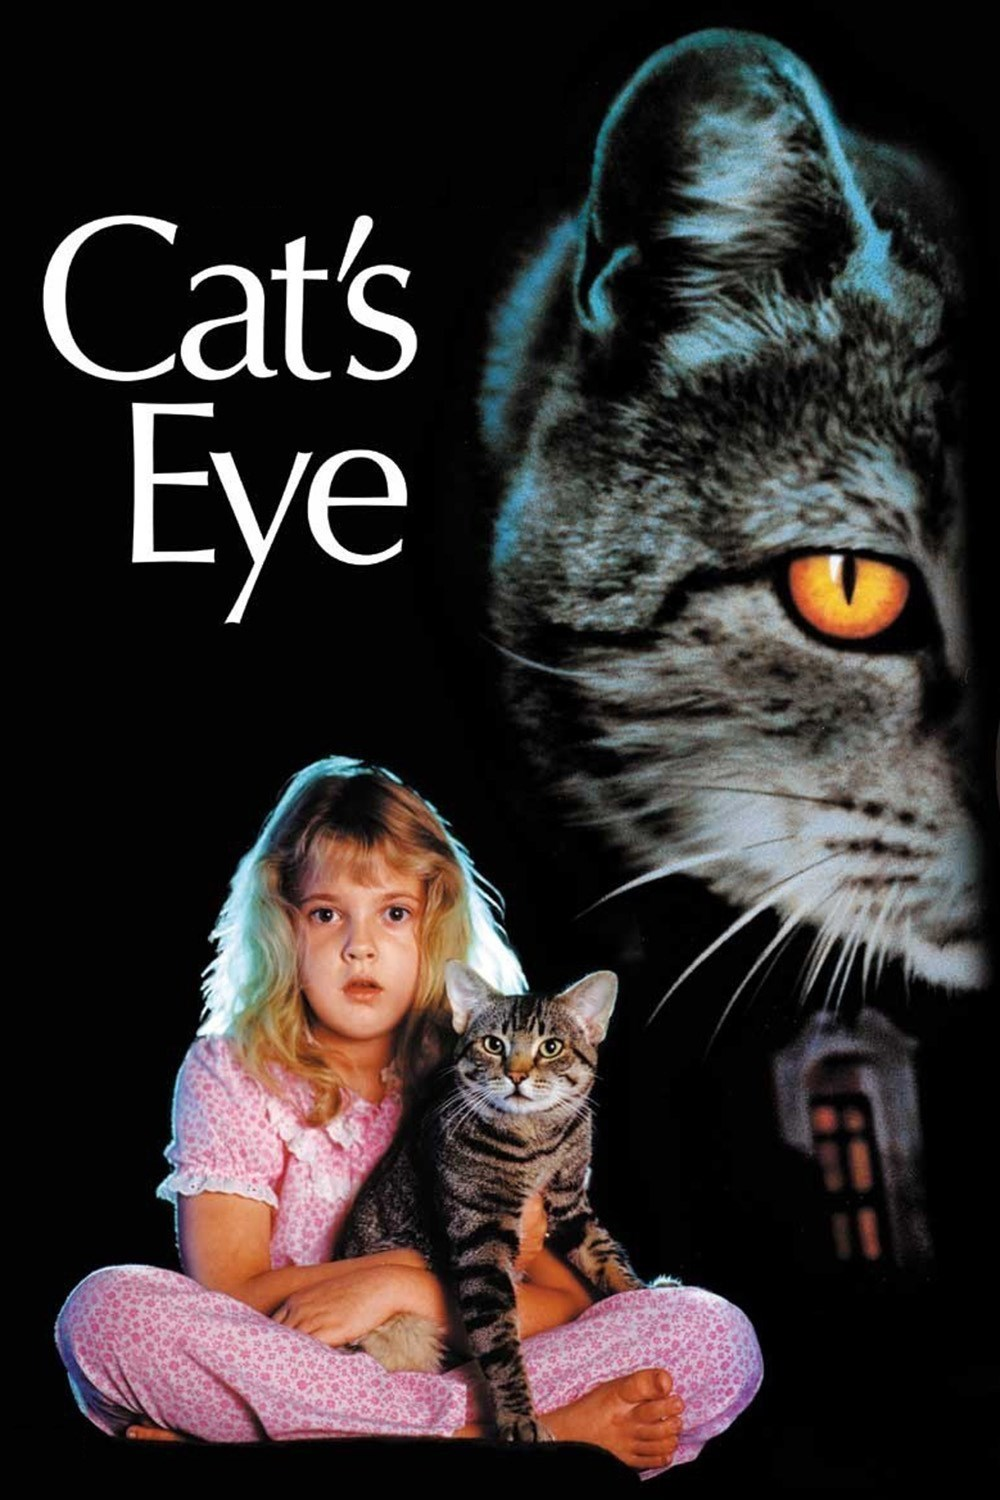 cats-eye-stephen-kings-cats-eye.28823.jpg